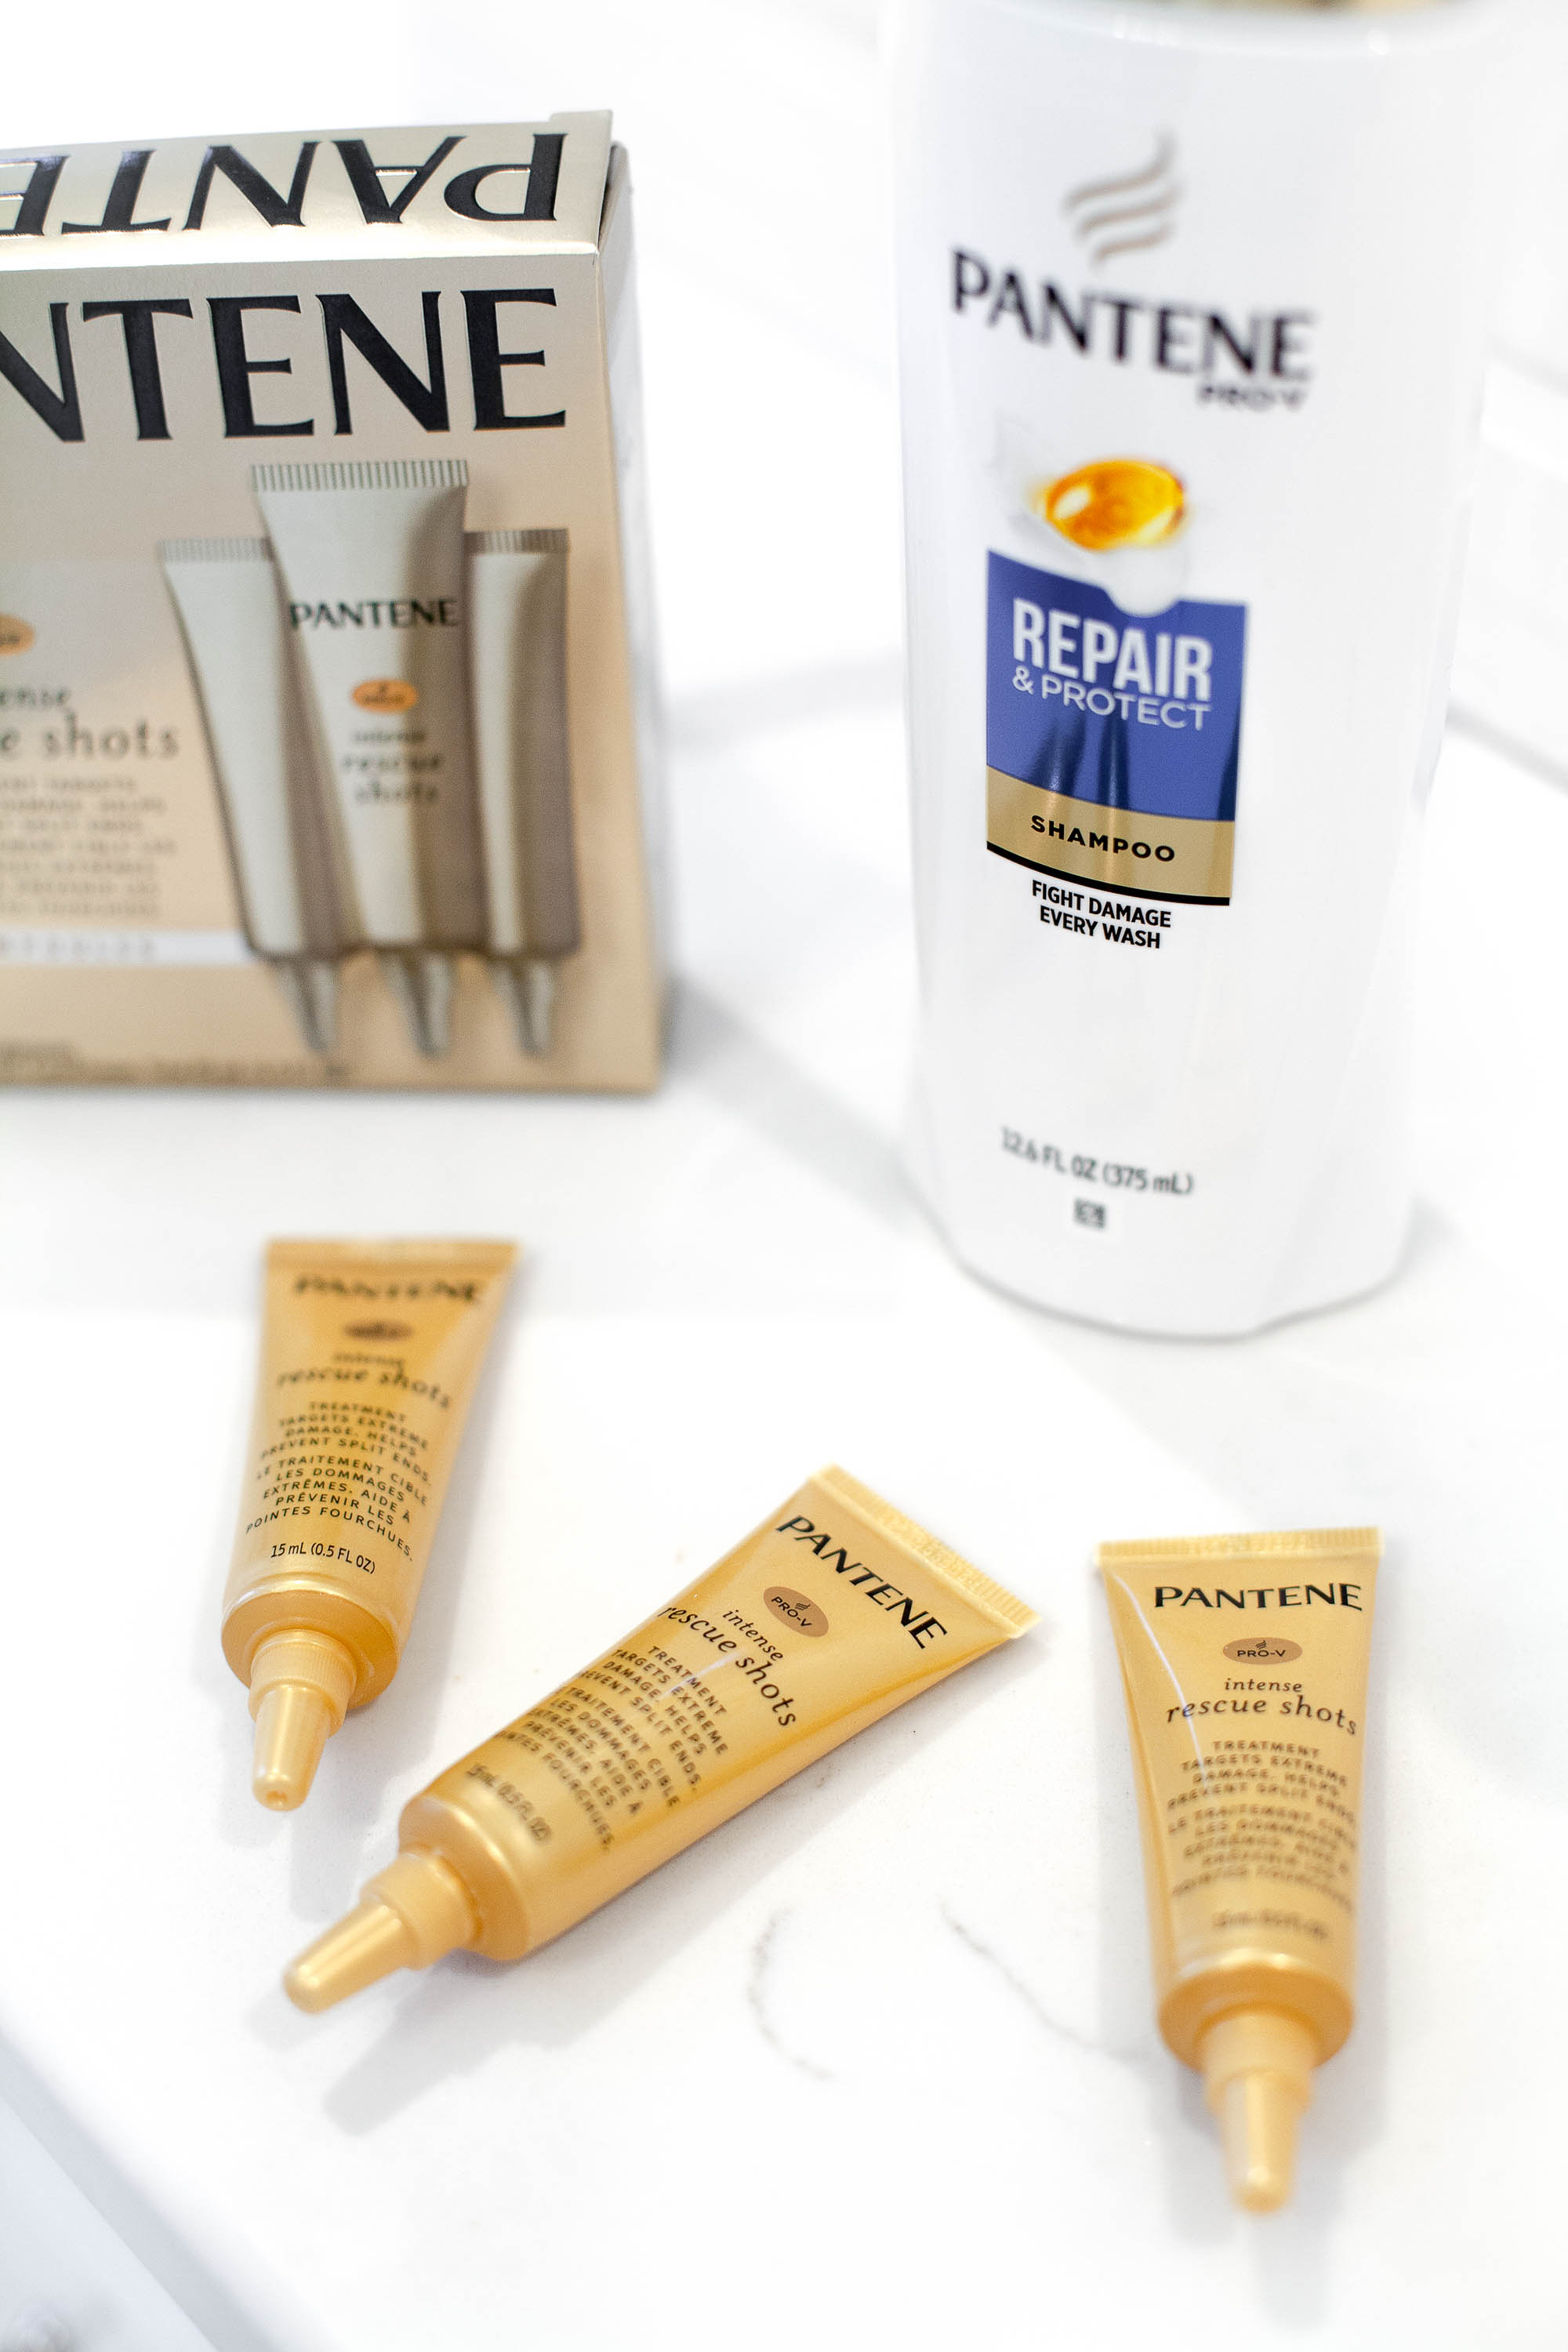 Caring For My Hair With Pantene Rescue Shots